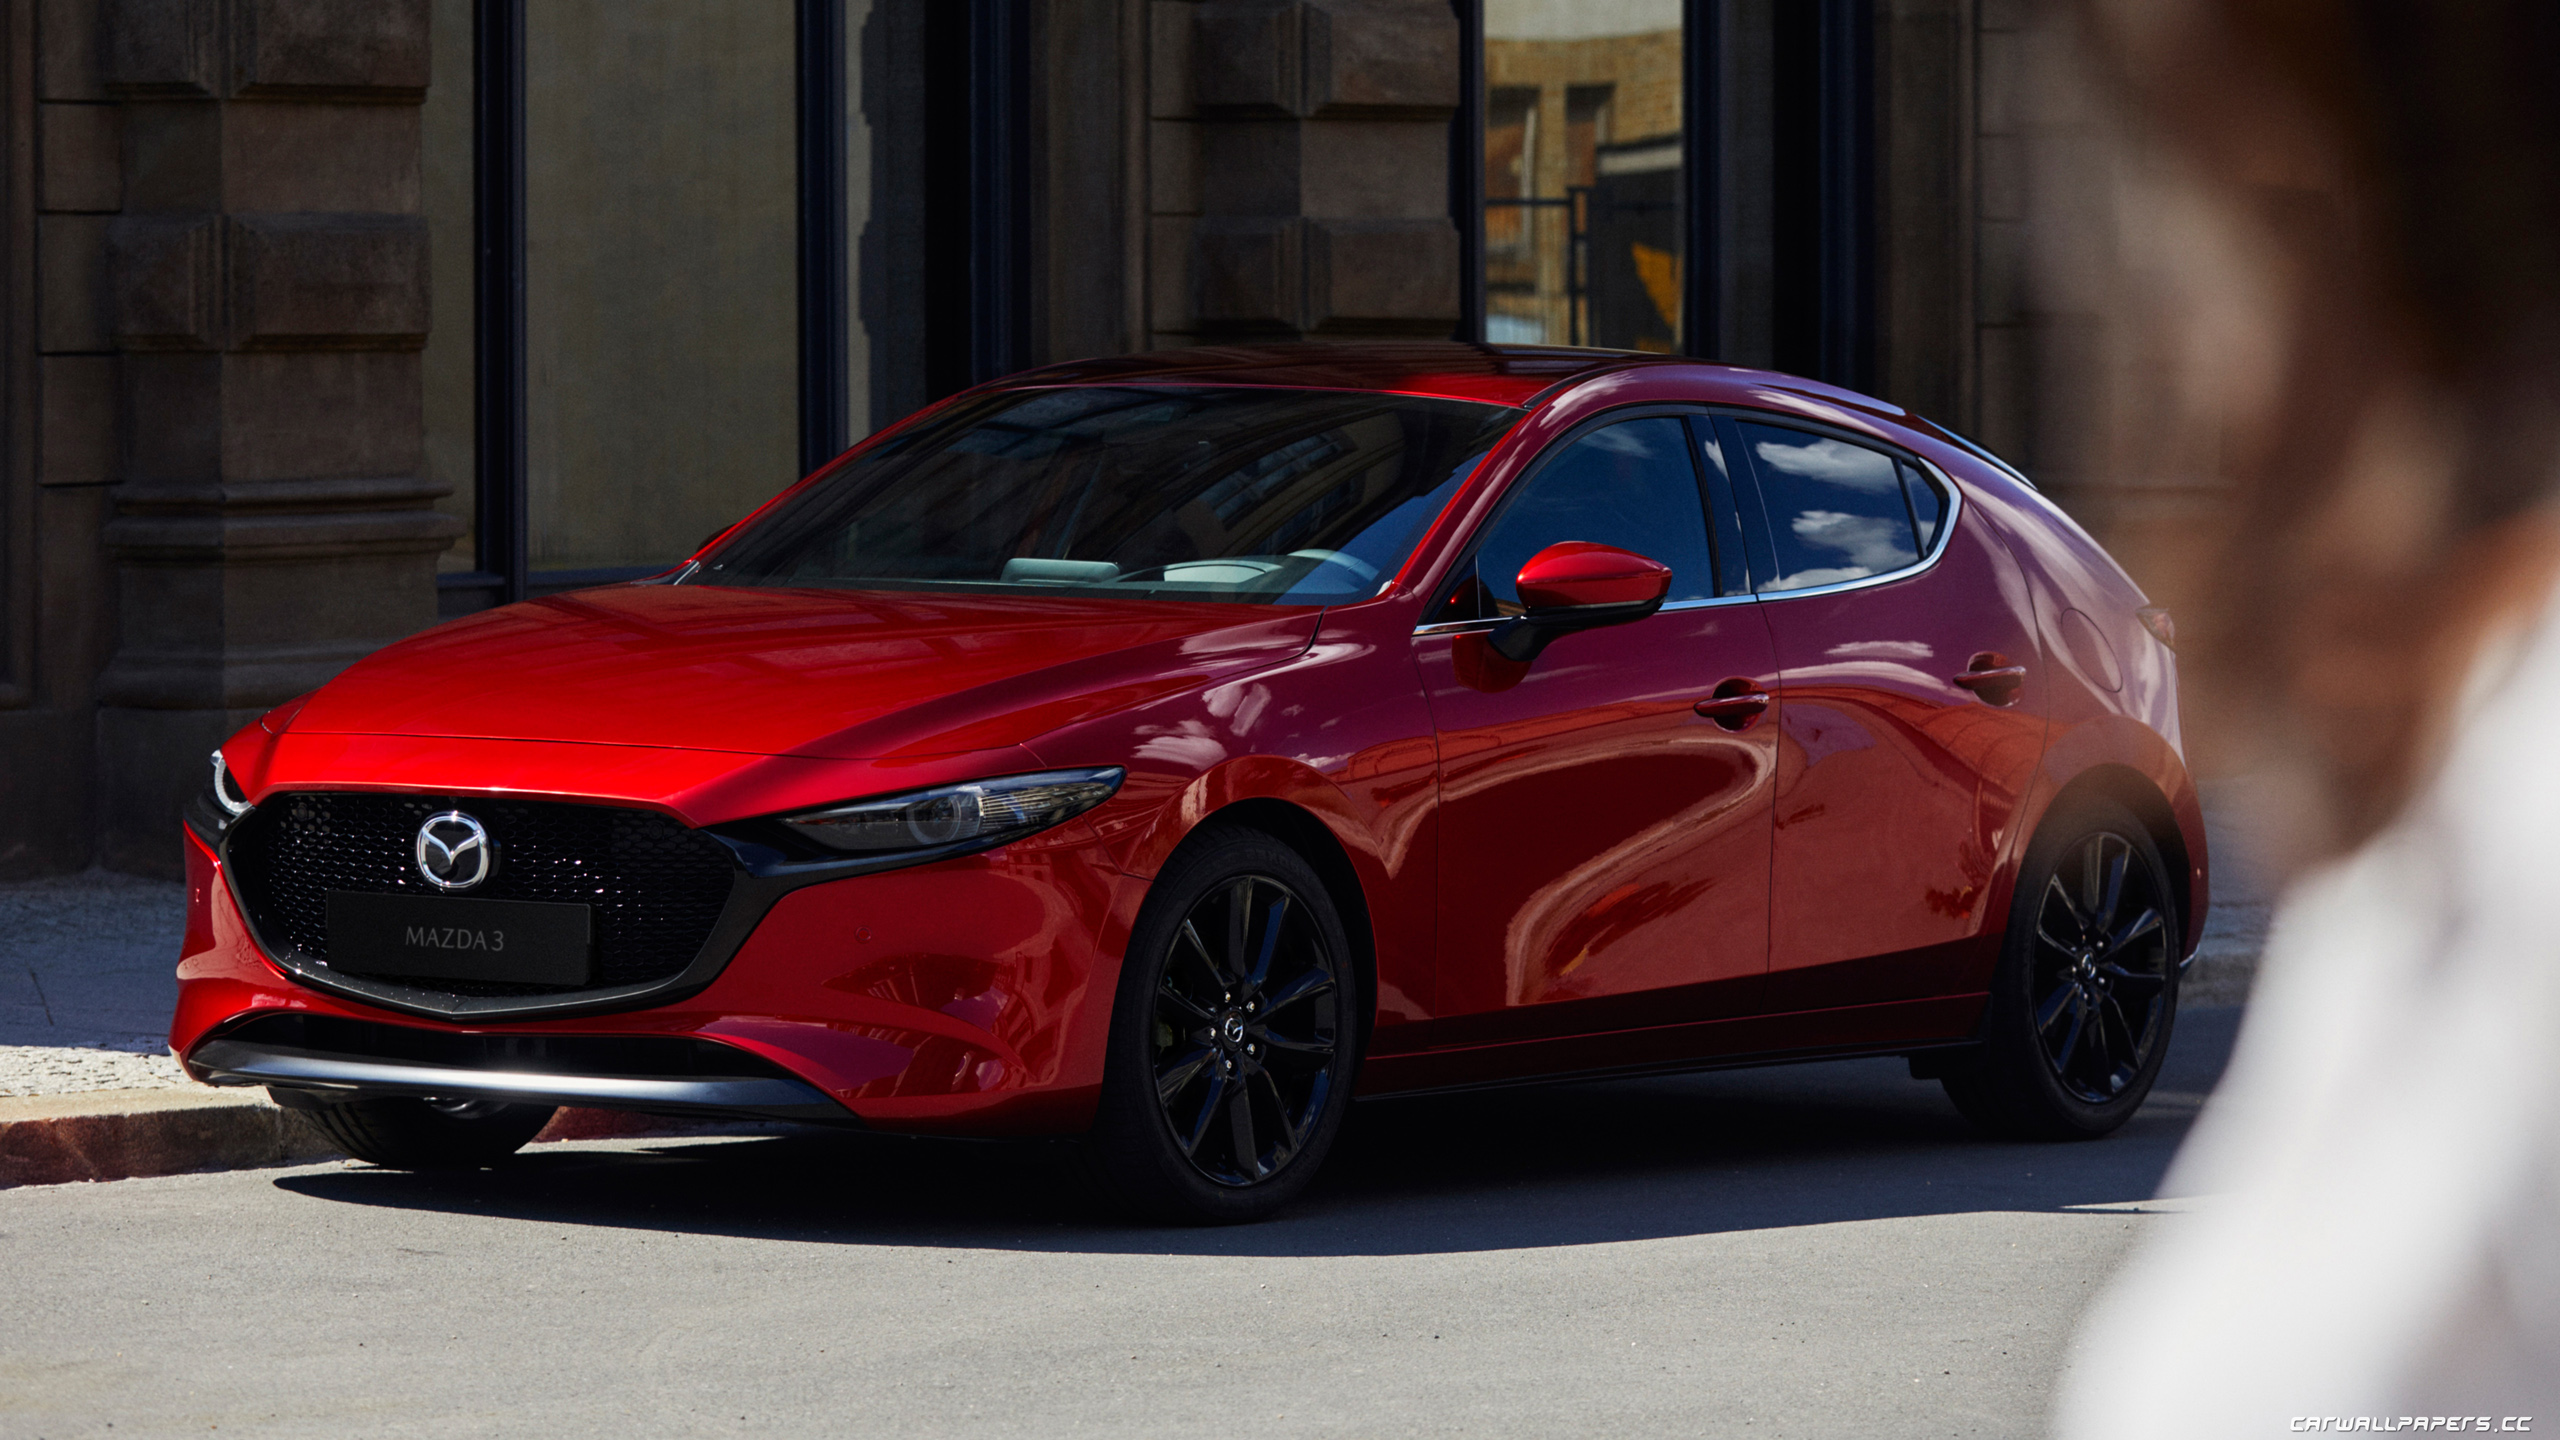 Cars desktop wallpapers Mazda 3 Hatchback